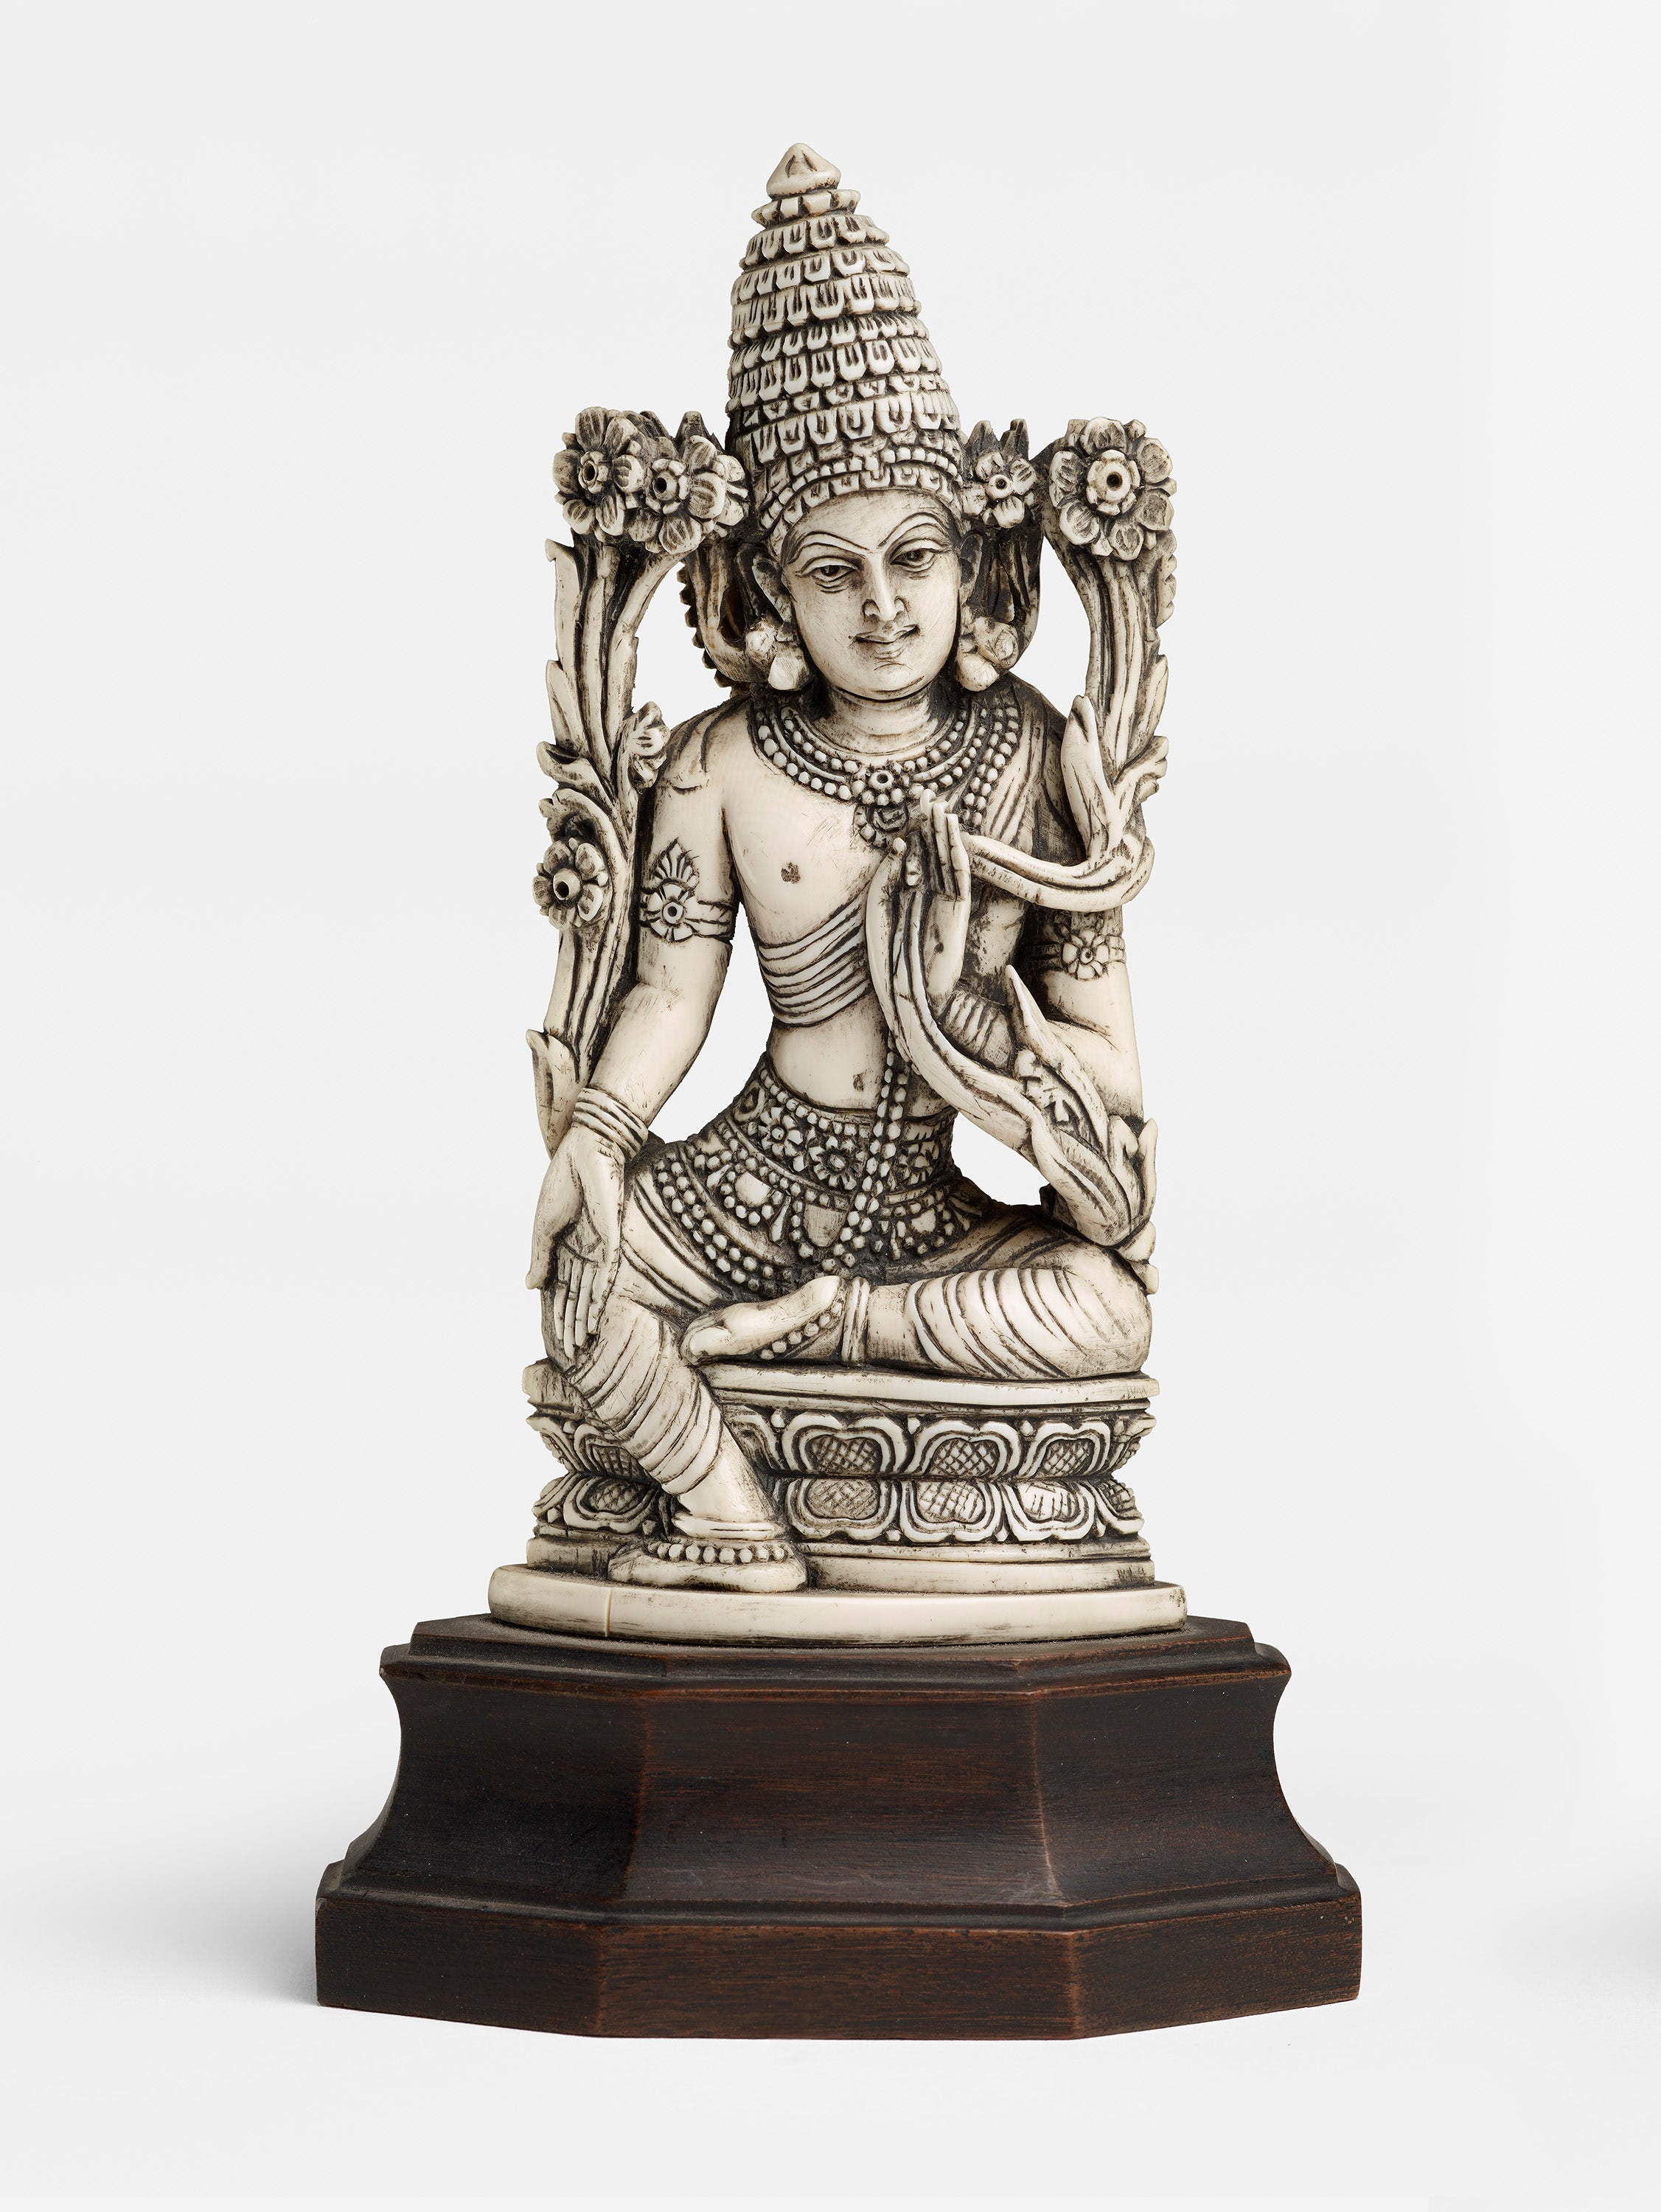 Poster - of a statuette of seated lord from India